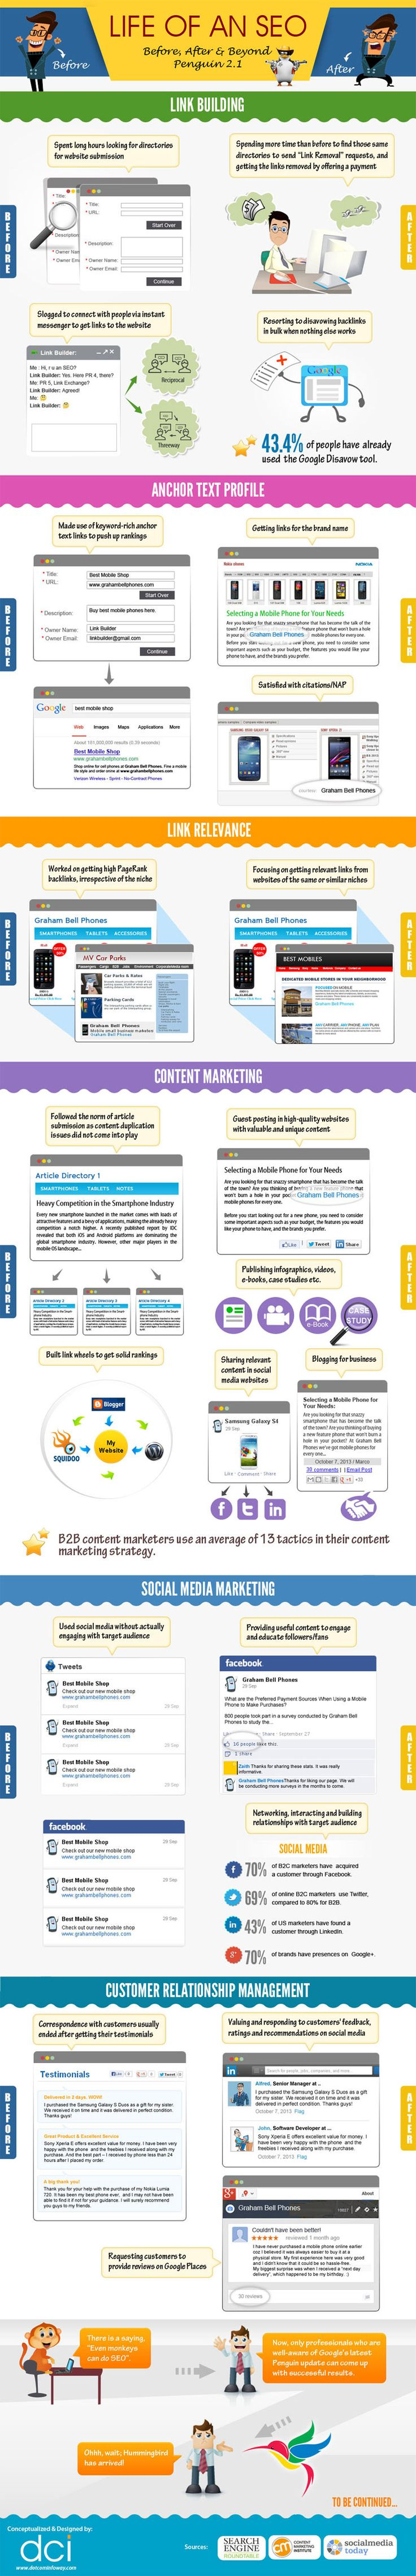 Life of an SEO Before, After and Beyond Penguin 2.1 an Infographic